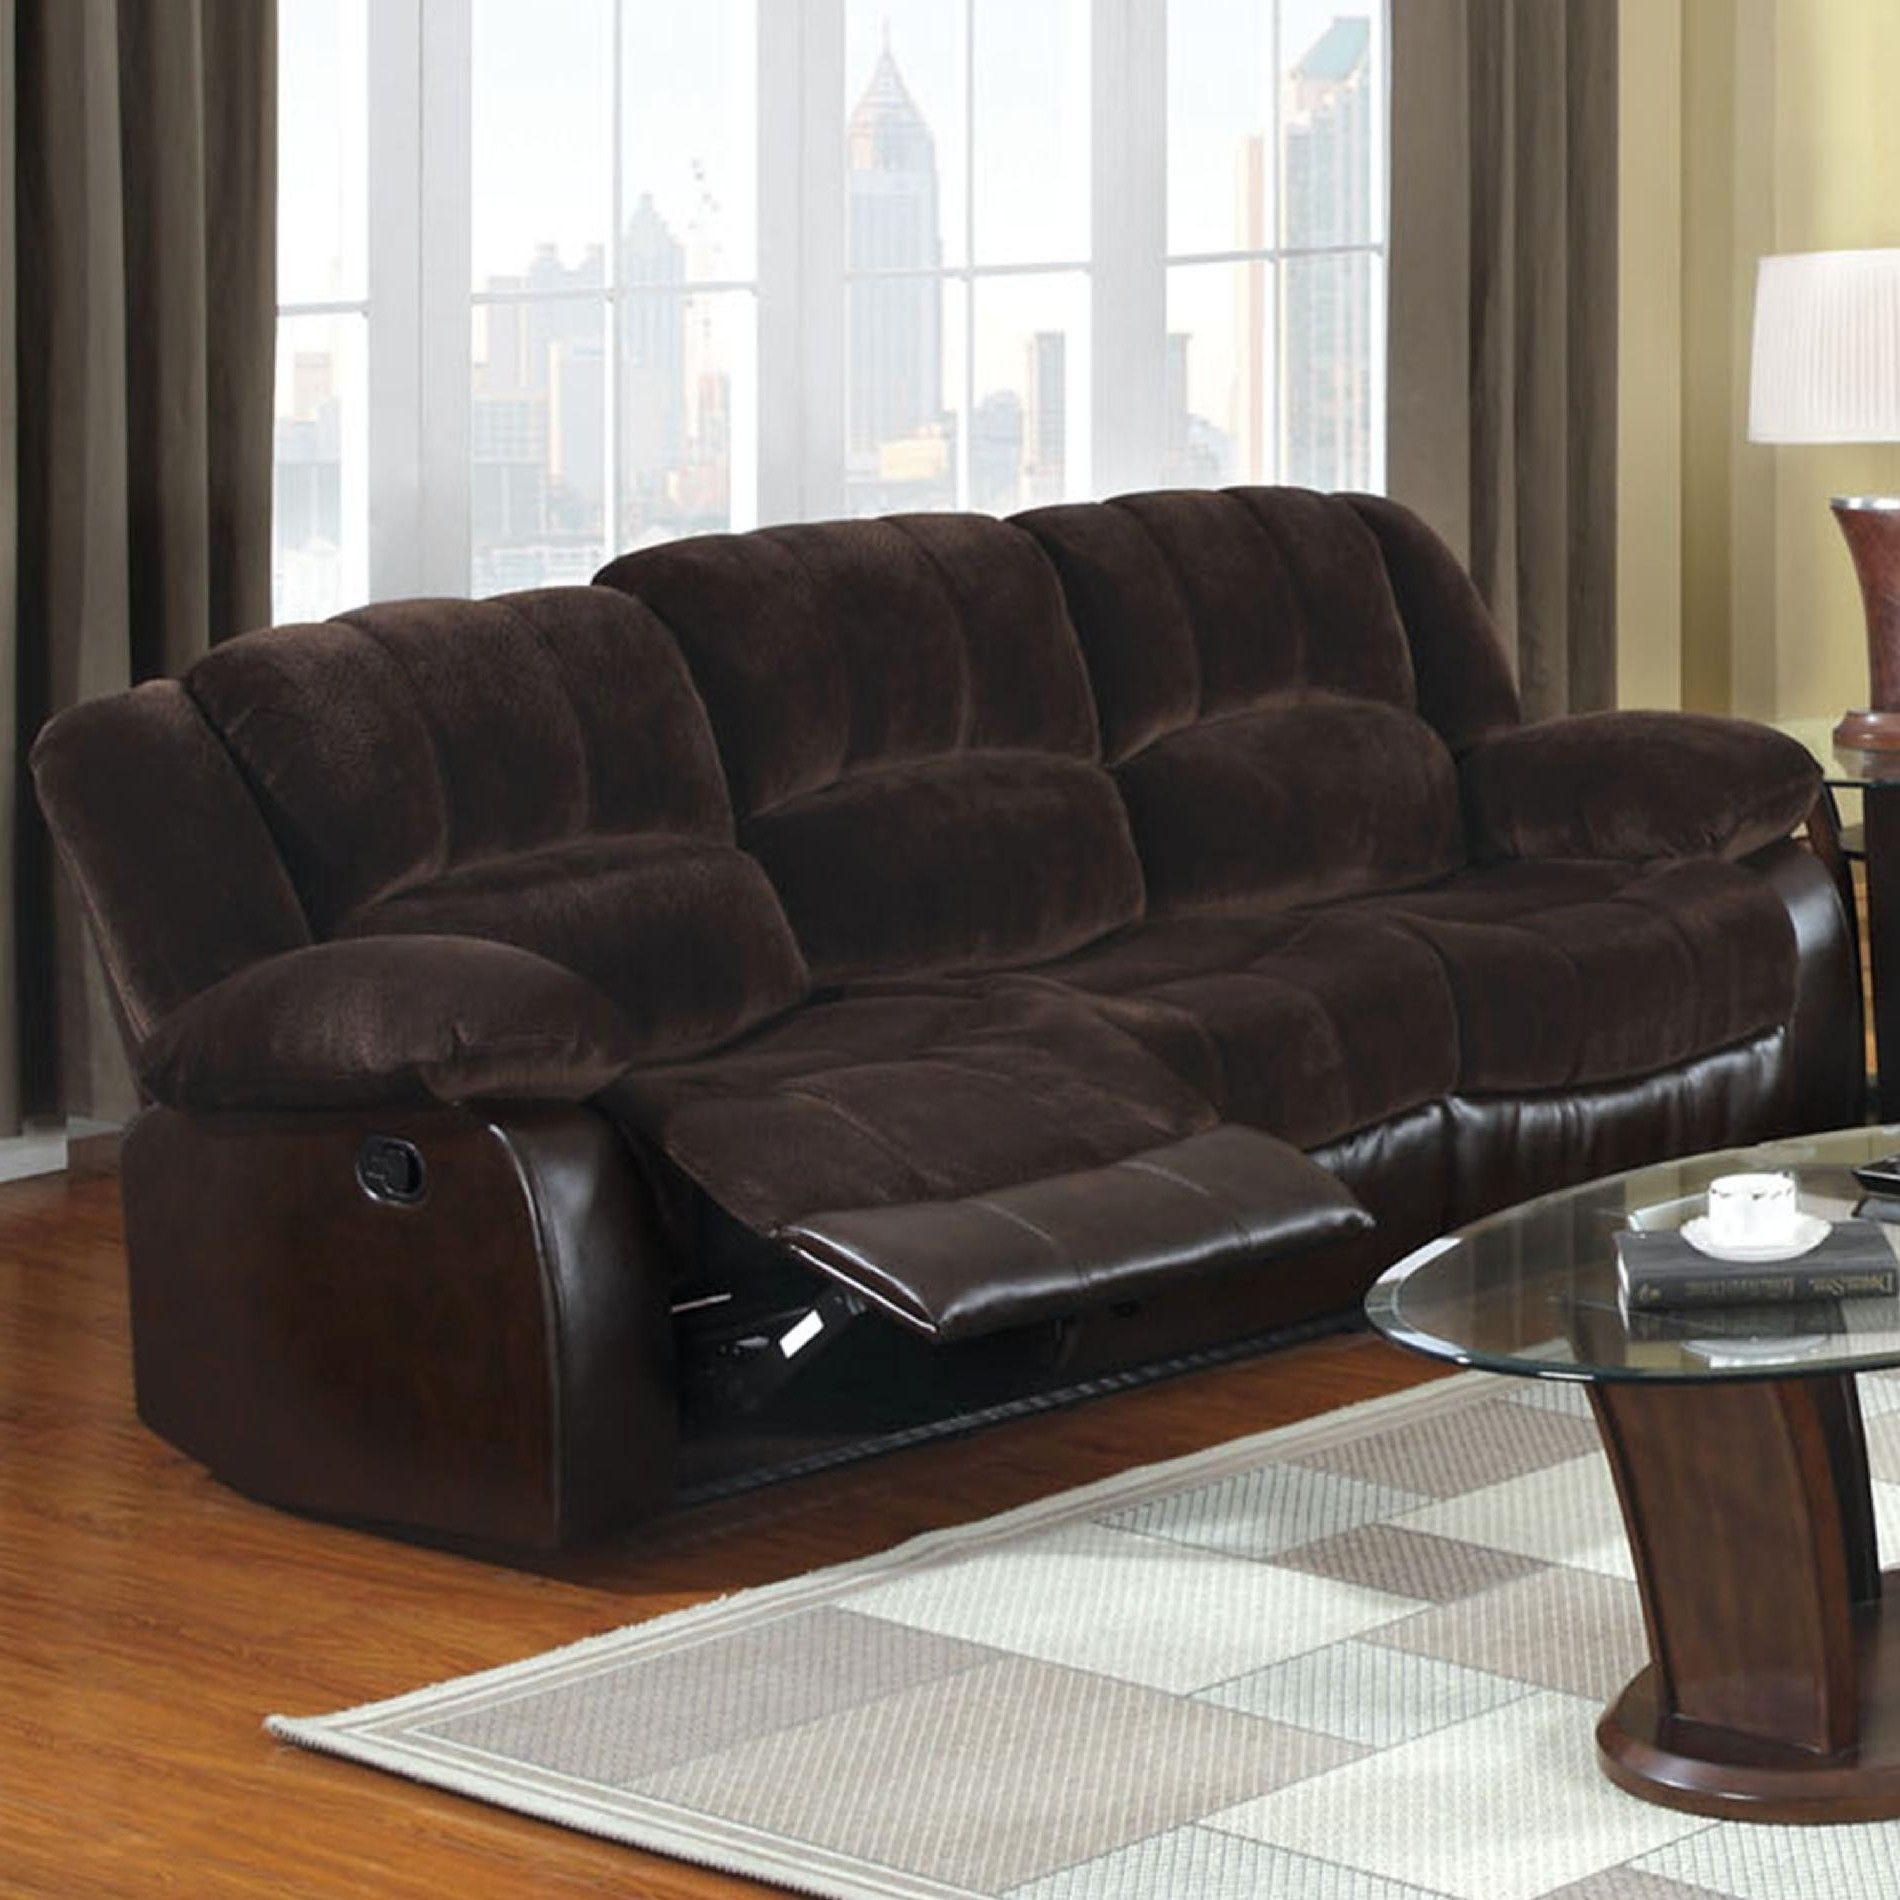 Lovely Awesome Sears Reclining Sofa , Inspirational Sears Reclining Sofa 88 For  Your Contemporary Sofa Inspiration With